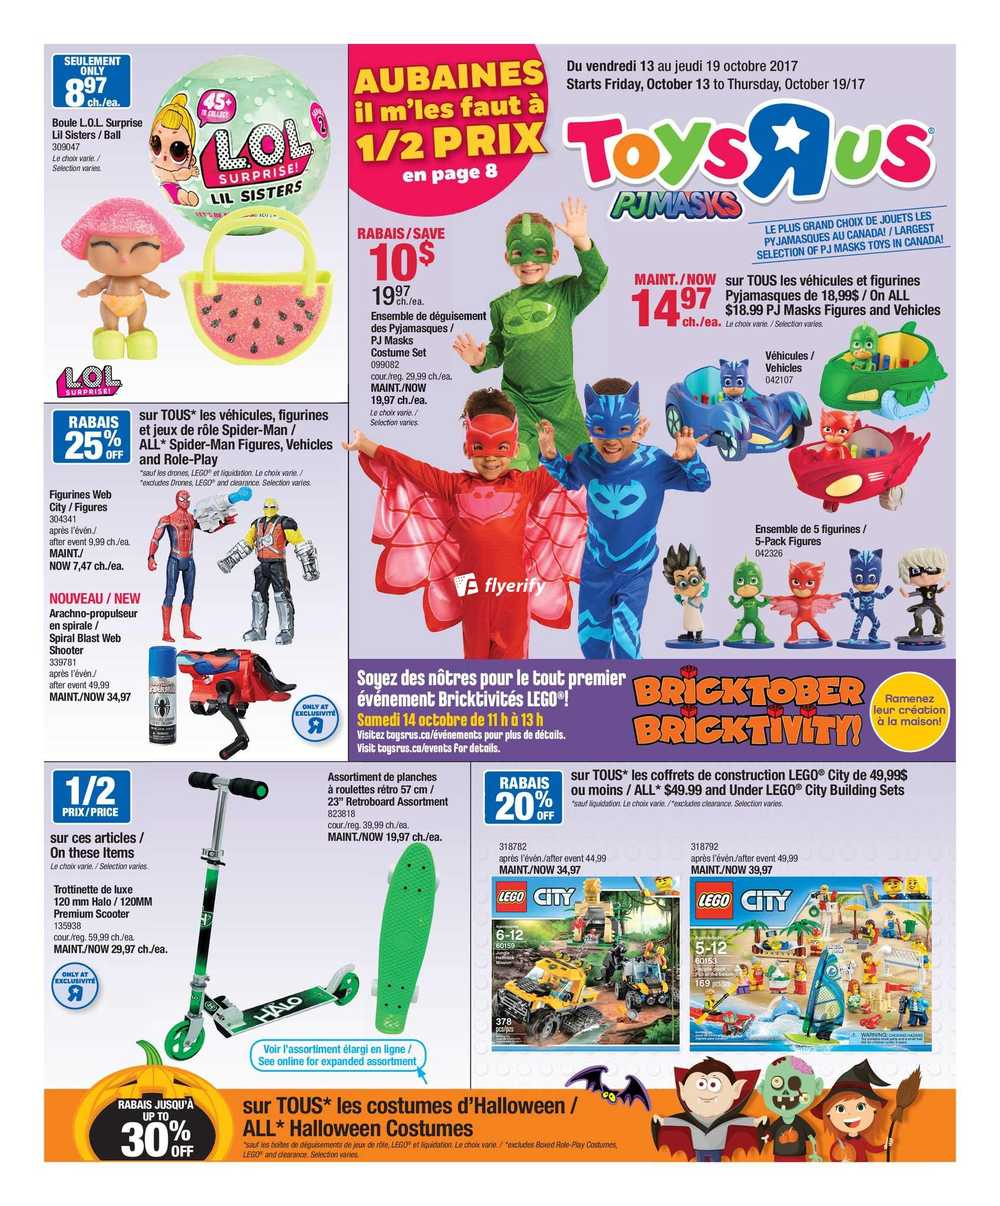 Toys r us qc flyer october 13 to 19 canada for 10 in 1 game table toys r us